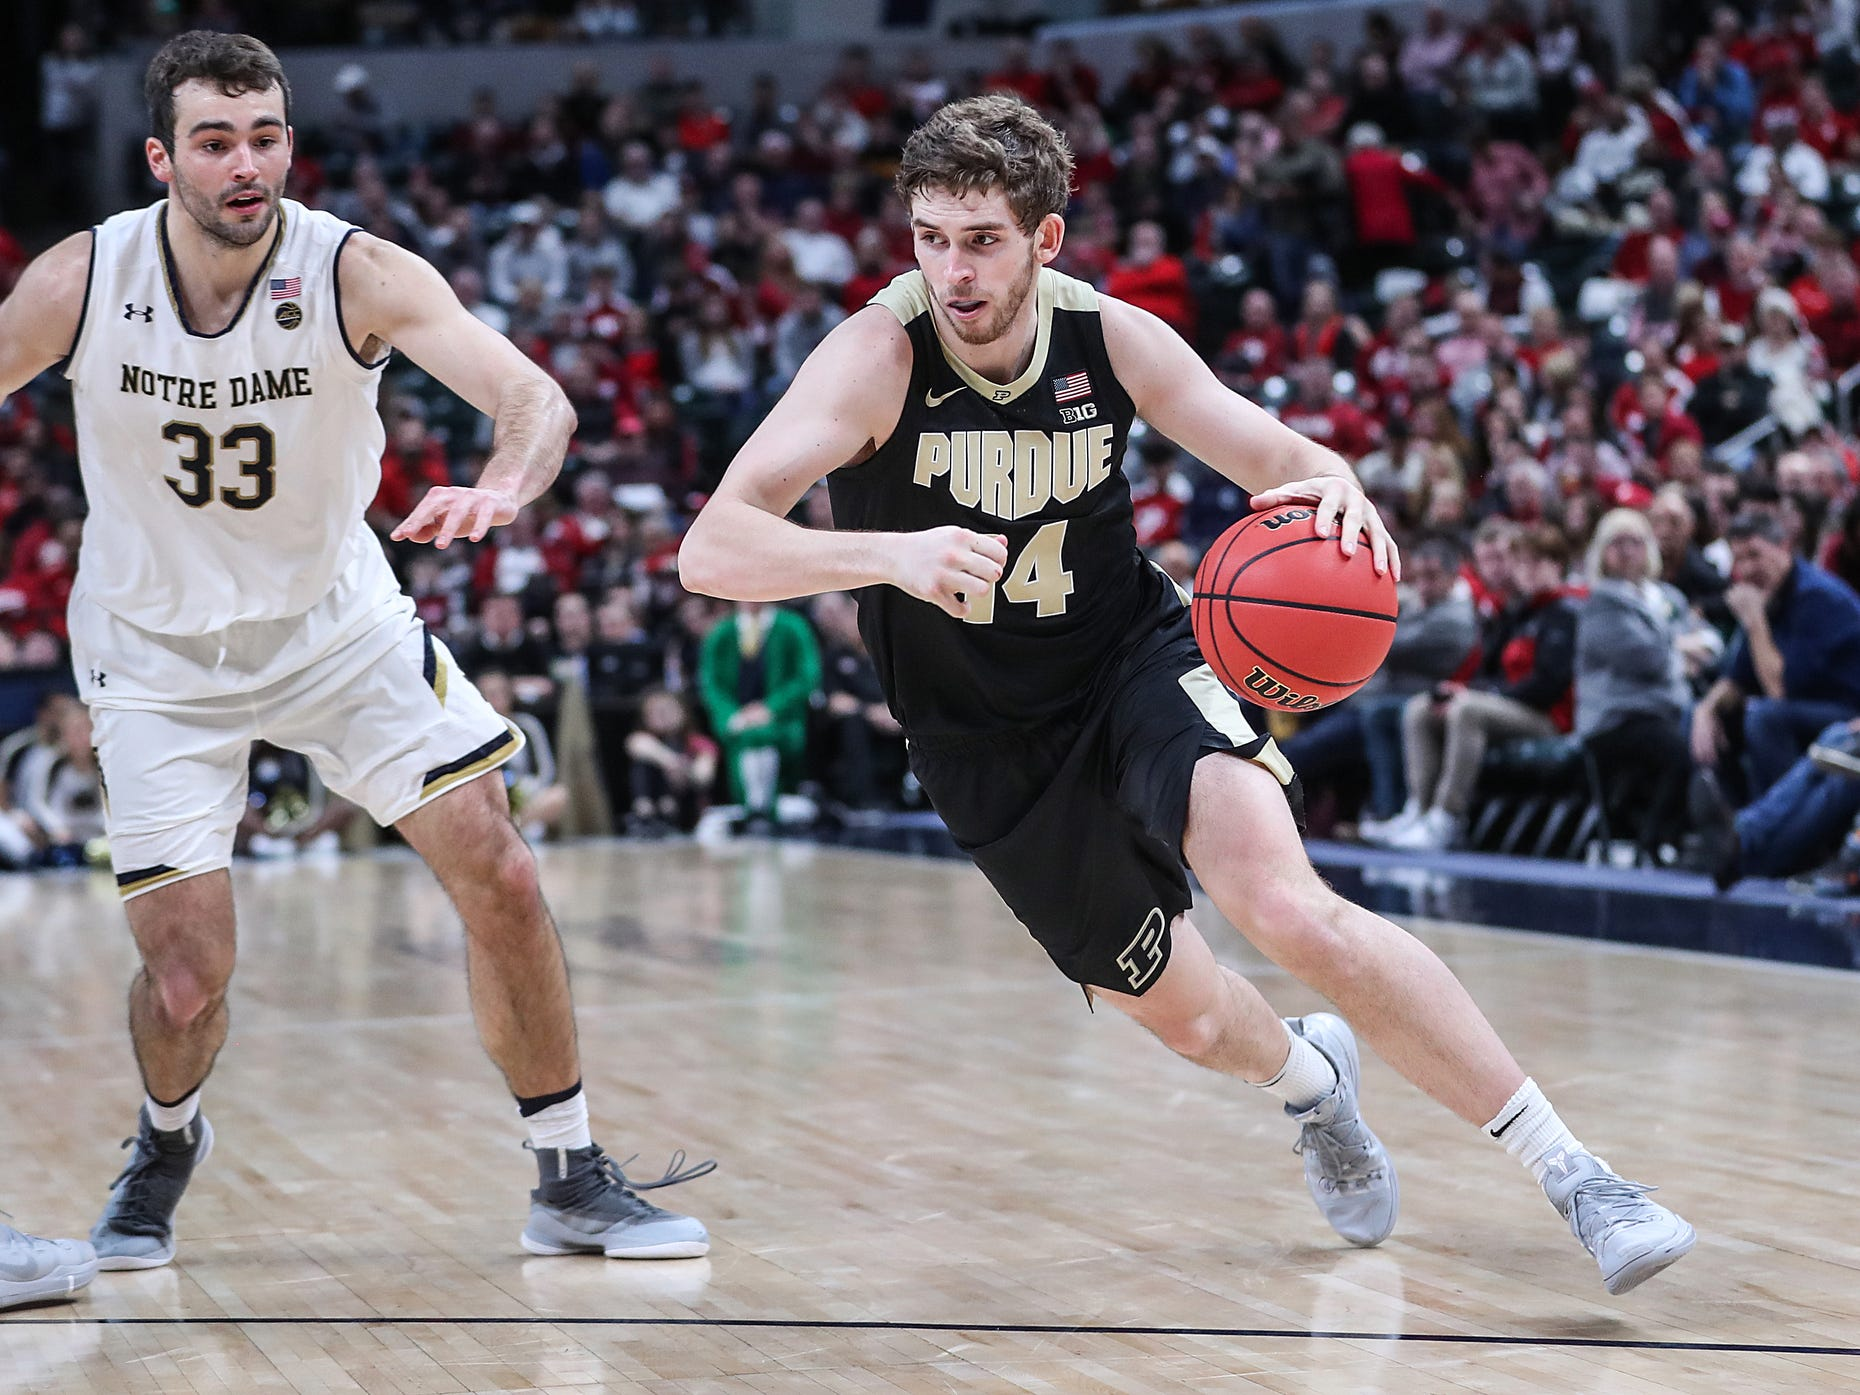 Notre Dame Fighting Irish forward John Mooney (33) guards Purdue Boilermakers guard Ryan Cline (14) as he drives toward the basket in the second half of the Crossroads Classic game between Purdue and Notre Dame at Bankers Life Fieldhouse in Indiananpolis, Saturday, Dec. 15, 2018. Notre Dame won, 88-80.